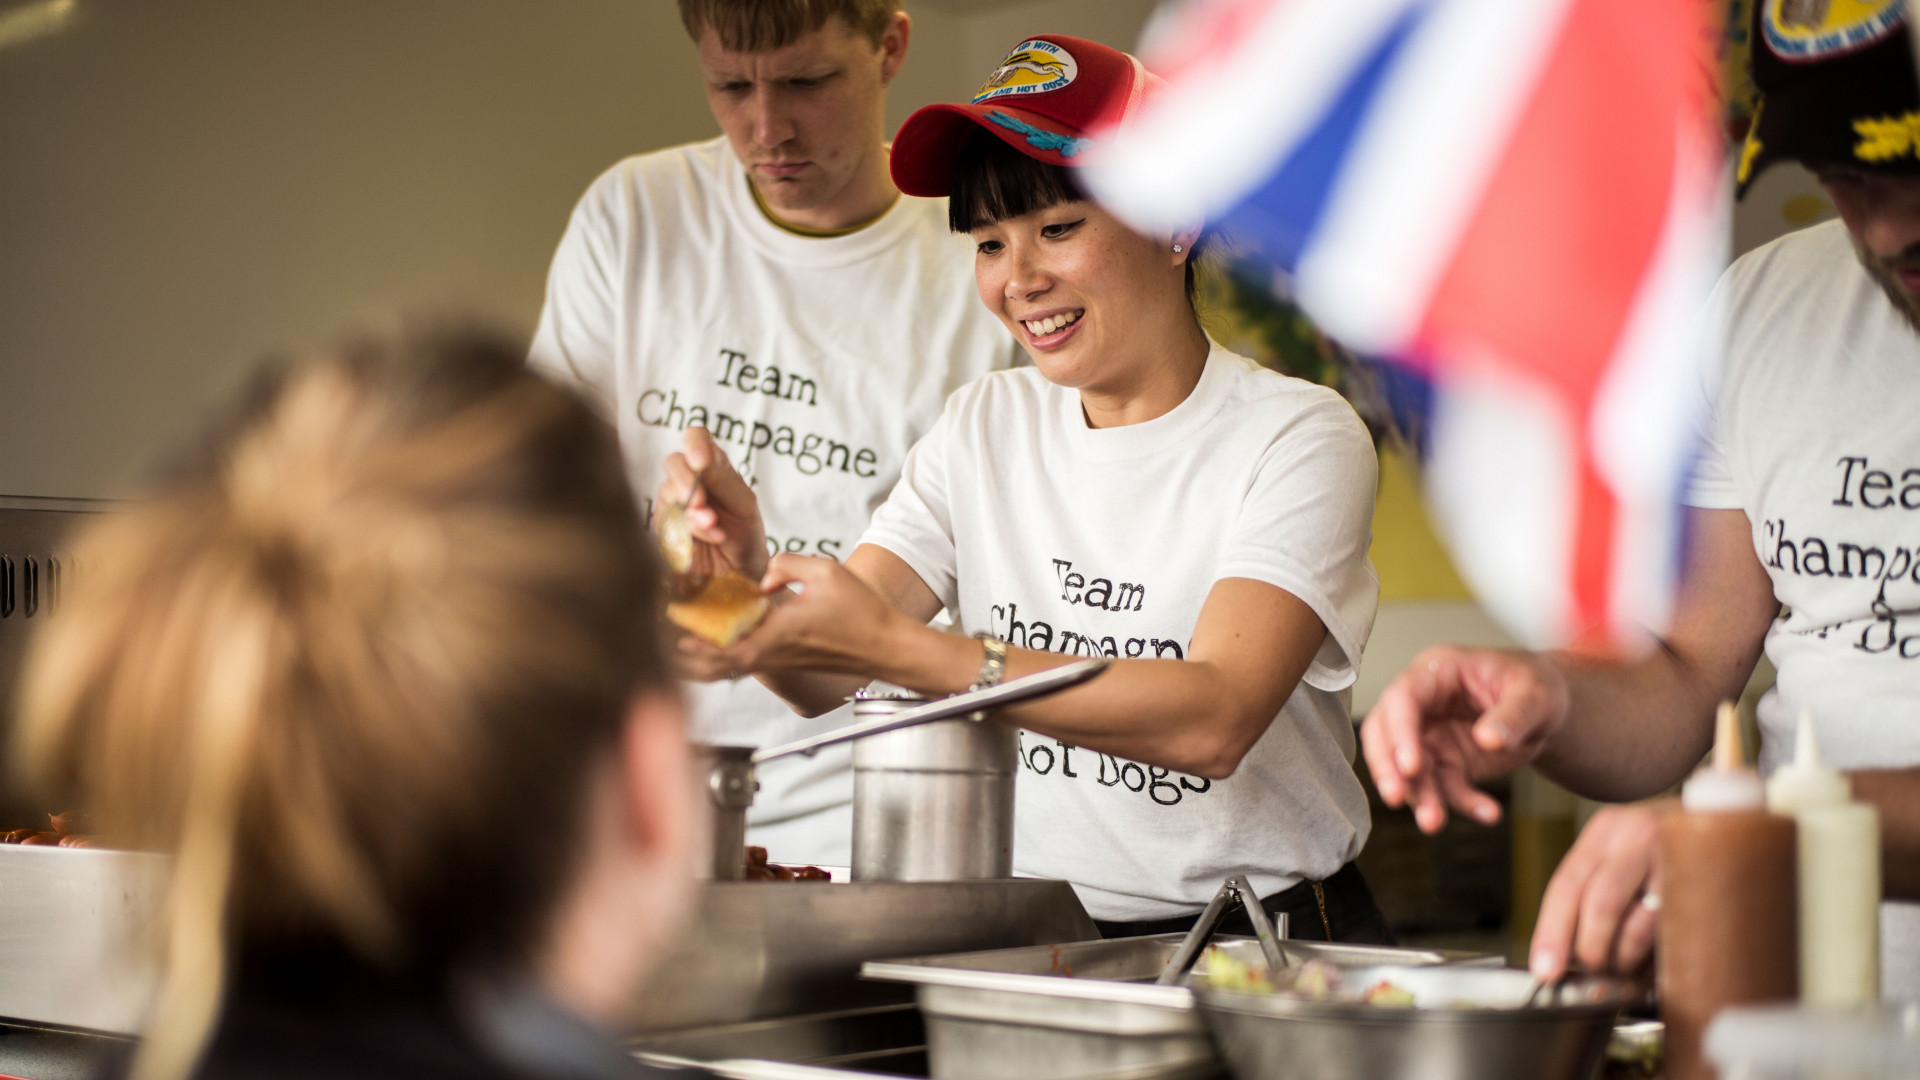 Sandia Chang at the World Hot Dog Championships in Copenhagen